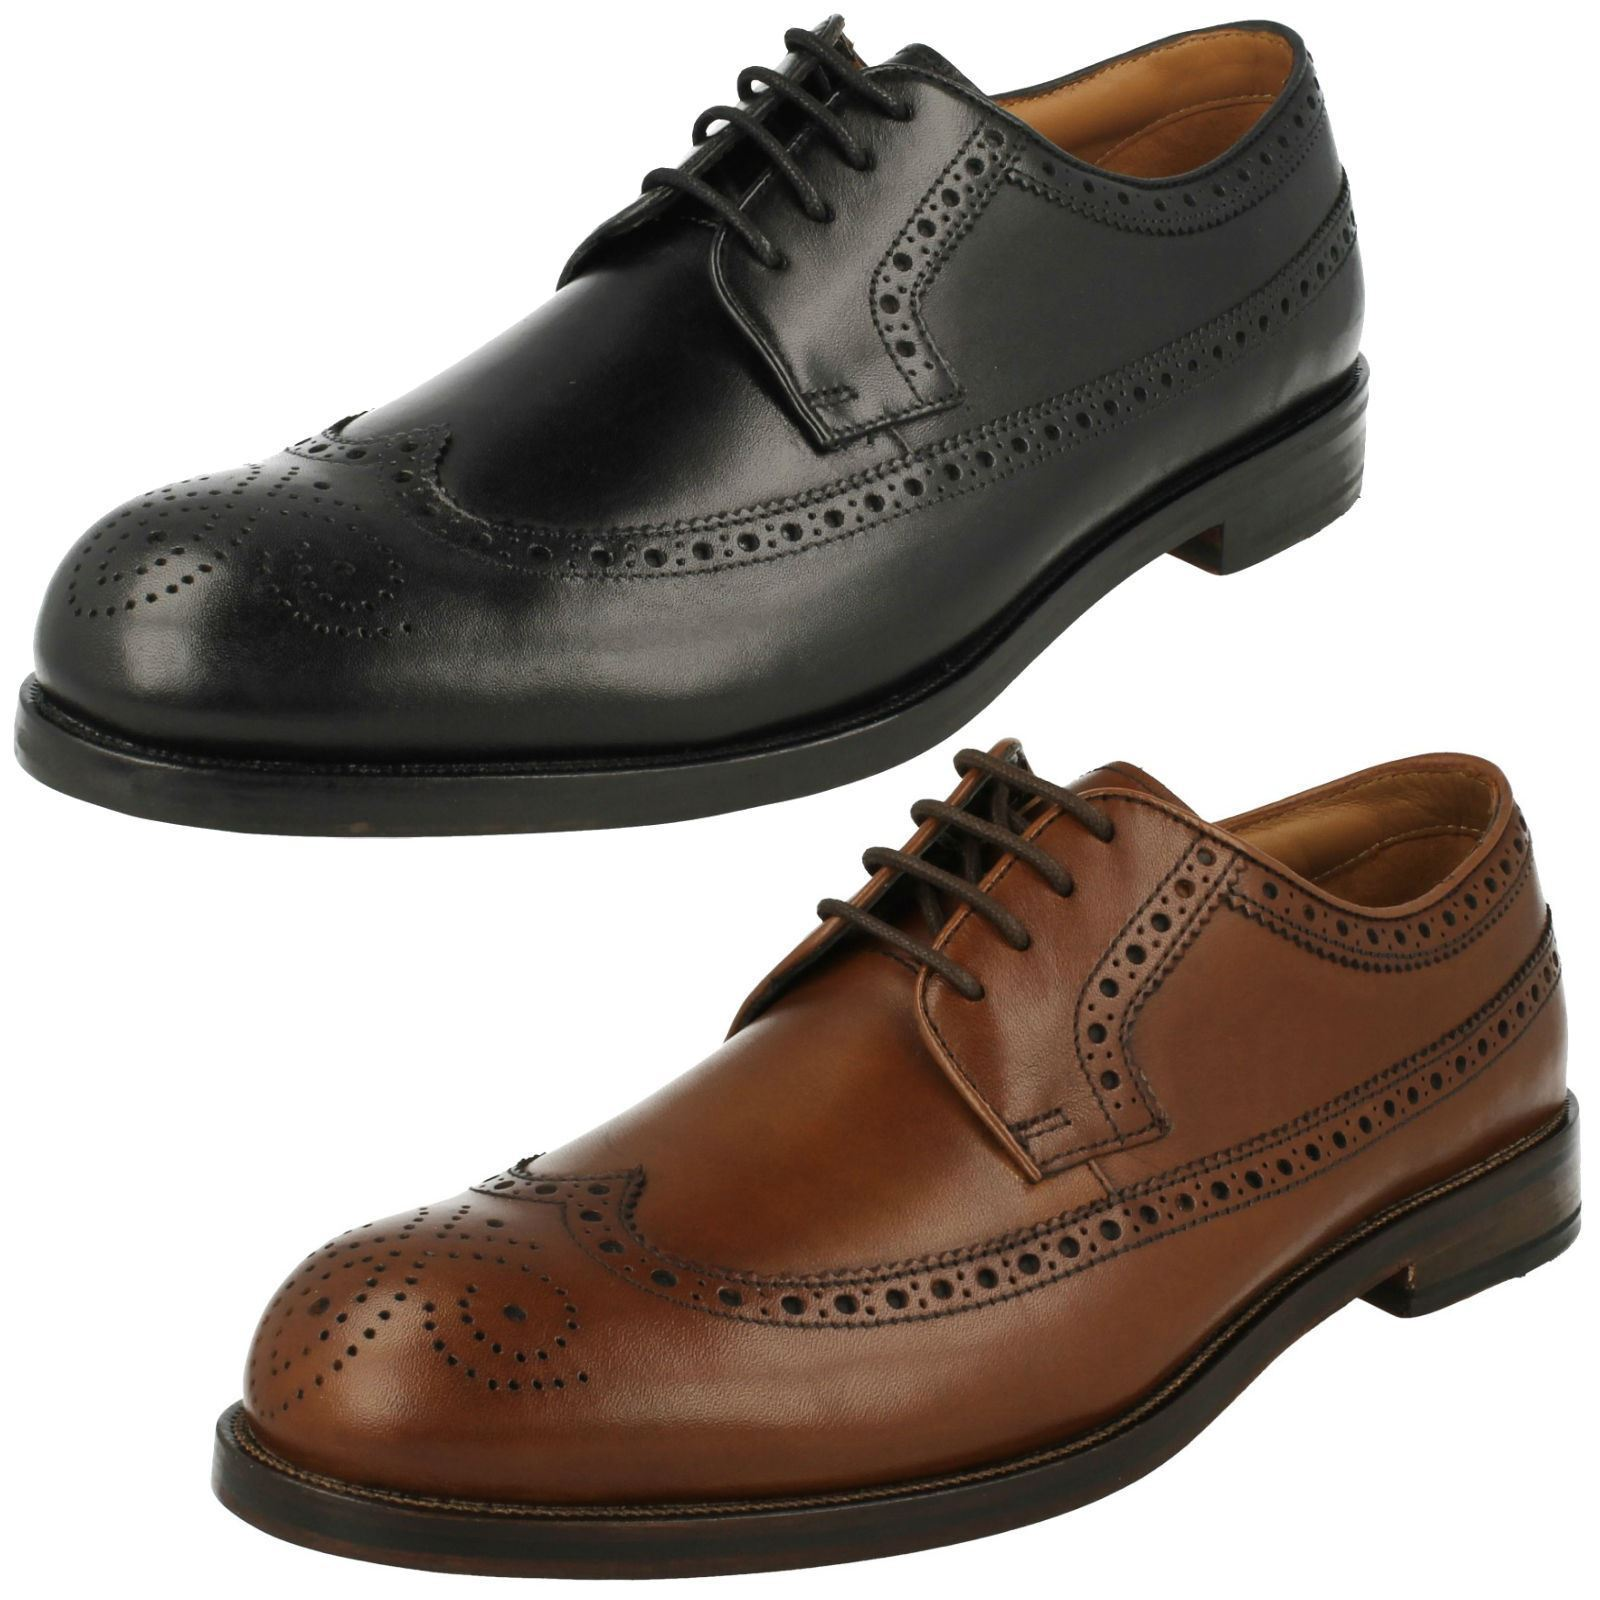 Mens Clarks Formal Brogue Style Shoes Coling Limit